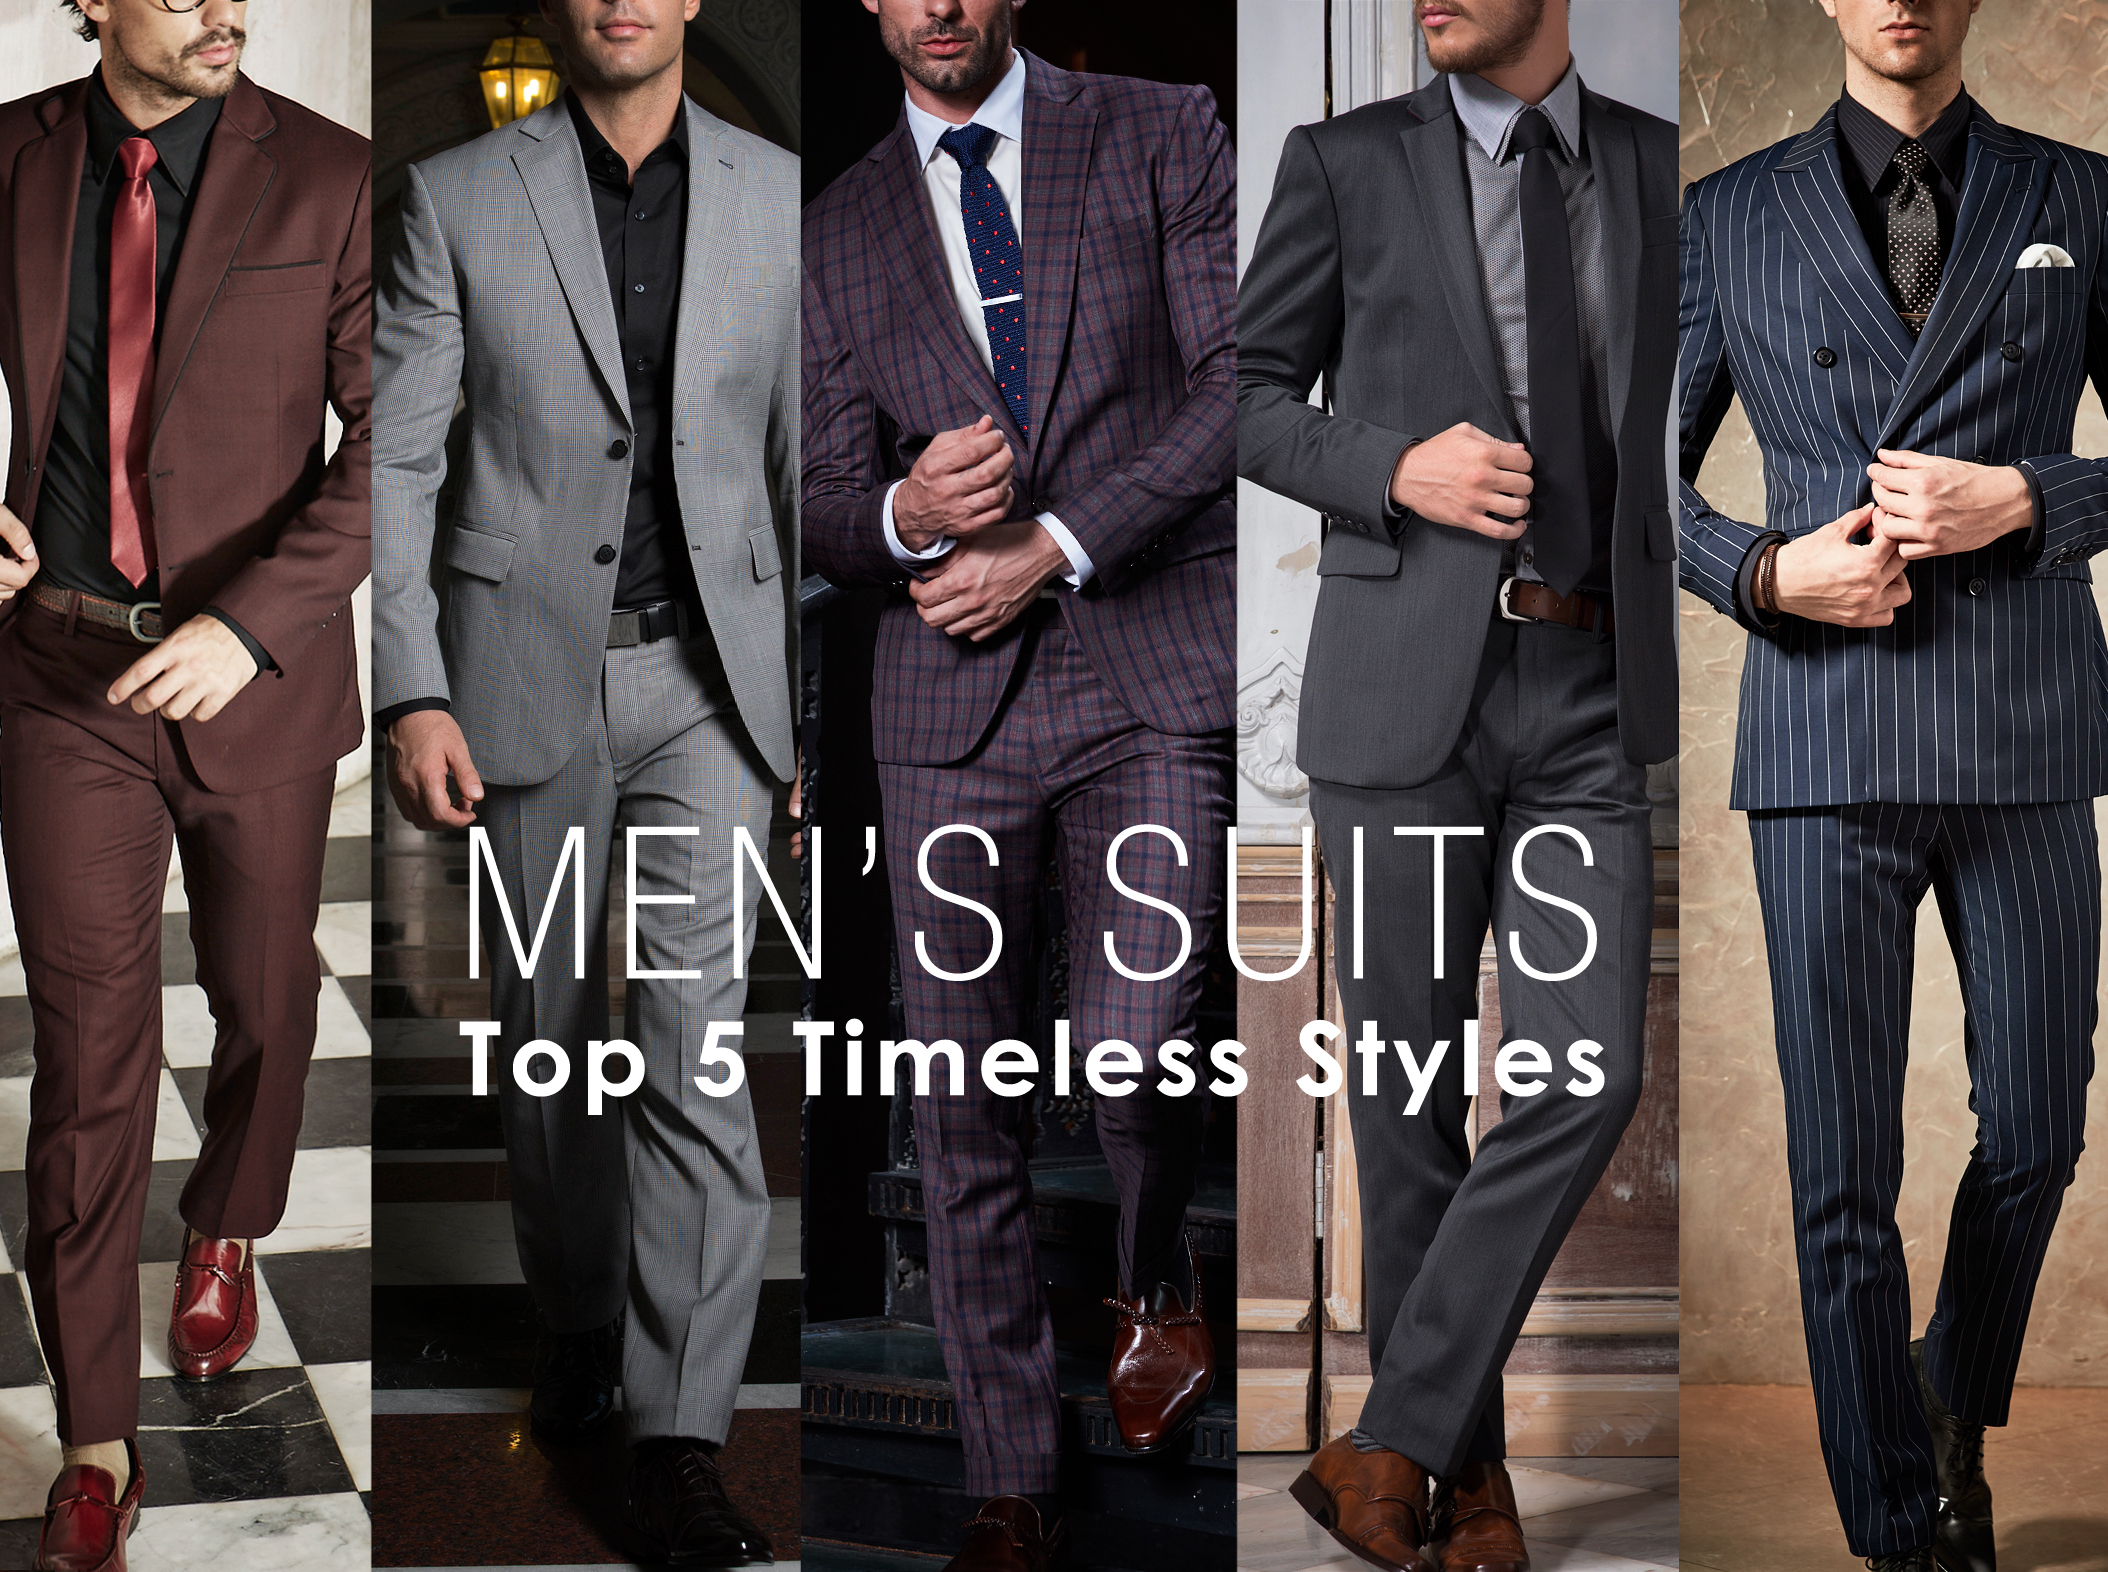 Men's Suits – Top 5 Timeless Styles